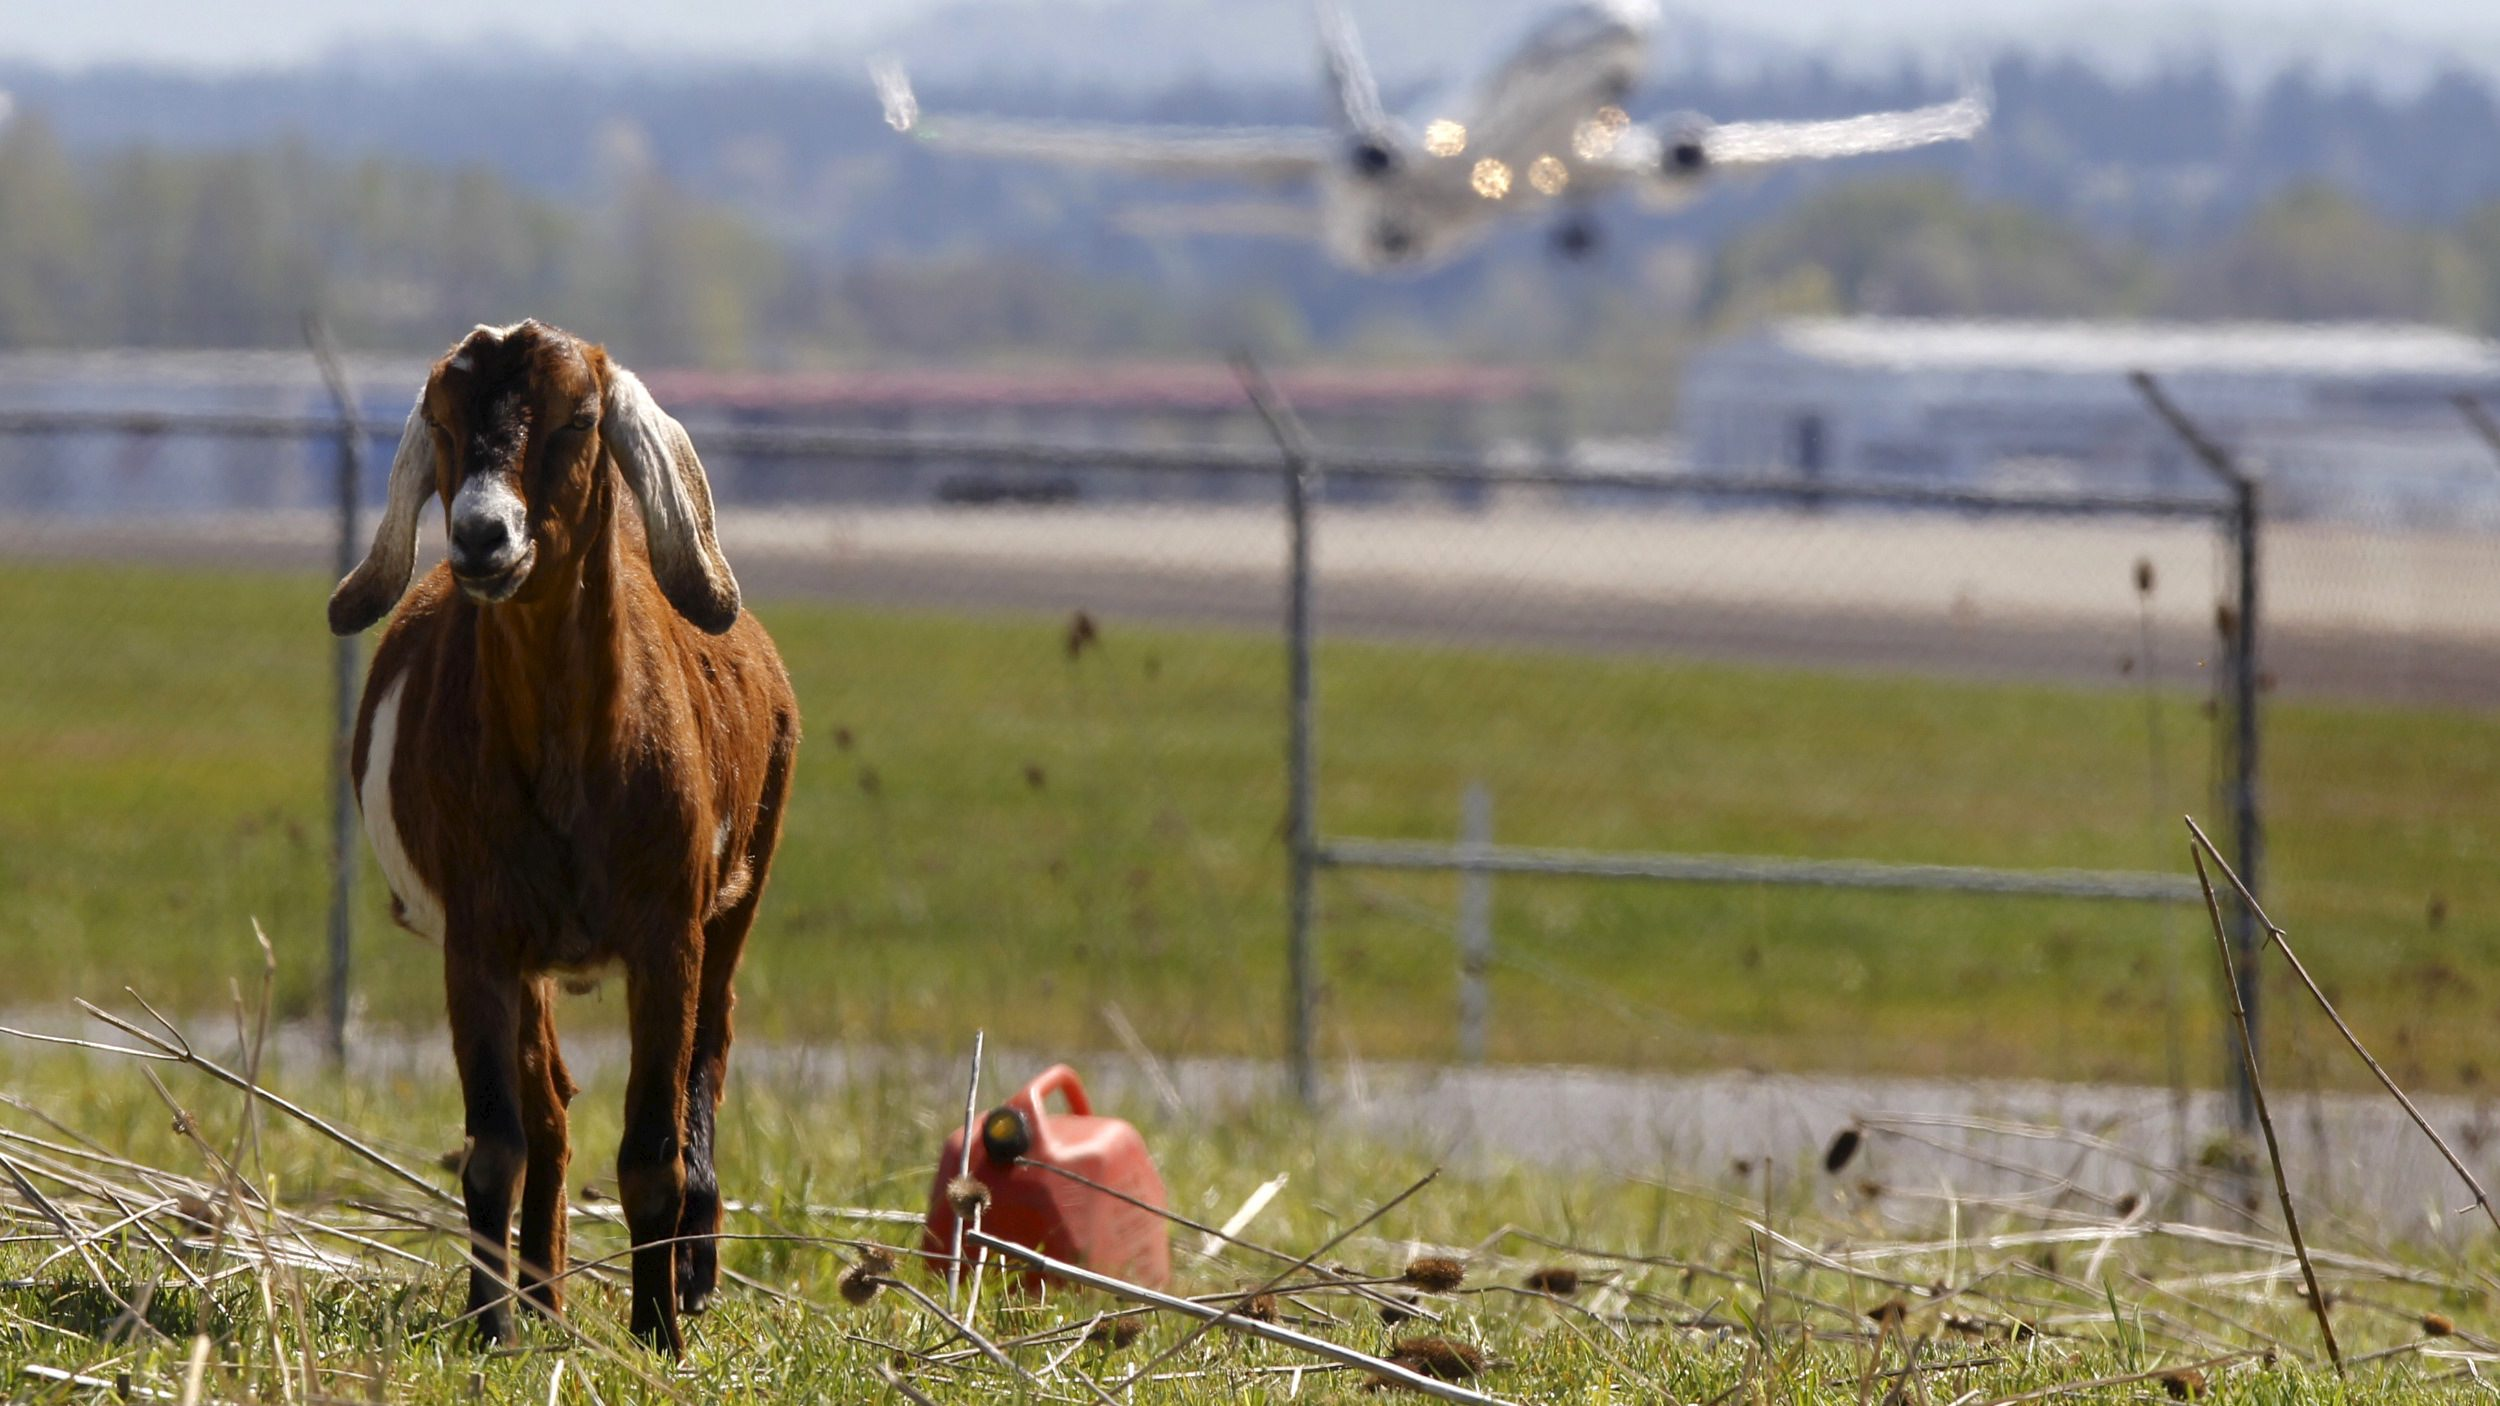 A plane takes off as a goat grazes at the Portland International Airport in Portland, Oregon April 17, 2015. In a city that loves its goats, the Portland International Airport now has a temporary herd. Forty goats and a llama started munching this week on invasive plants such as blackberries, thistle and Scotch broom near the PDX airfield. The llama's job is to keep away predators like coyotes. Picture taken April 17, 2015.  REUTERS/Steve Dipaola - RTX19KH6